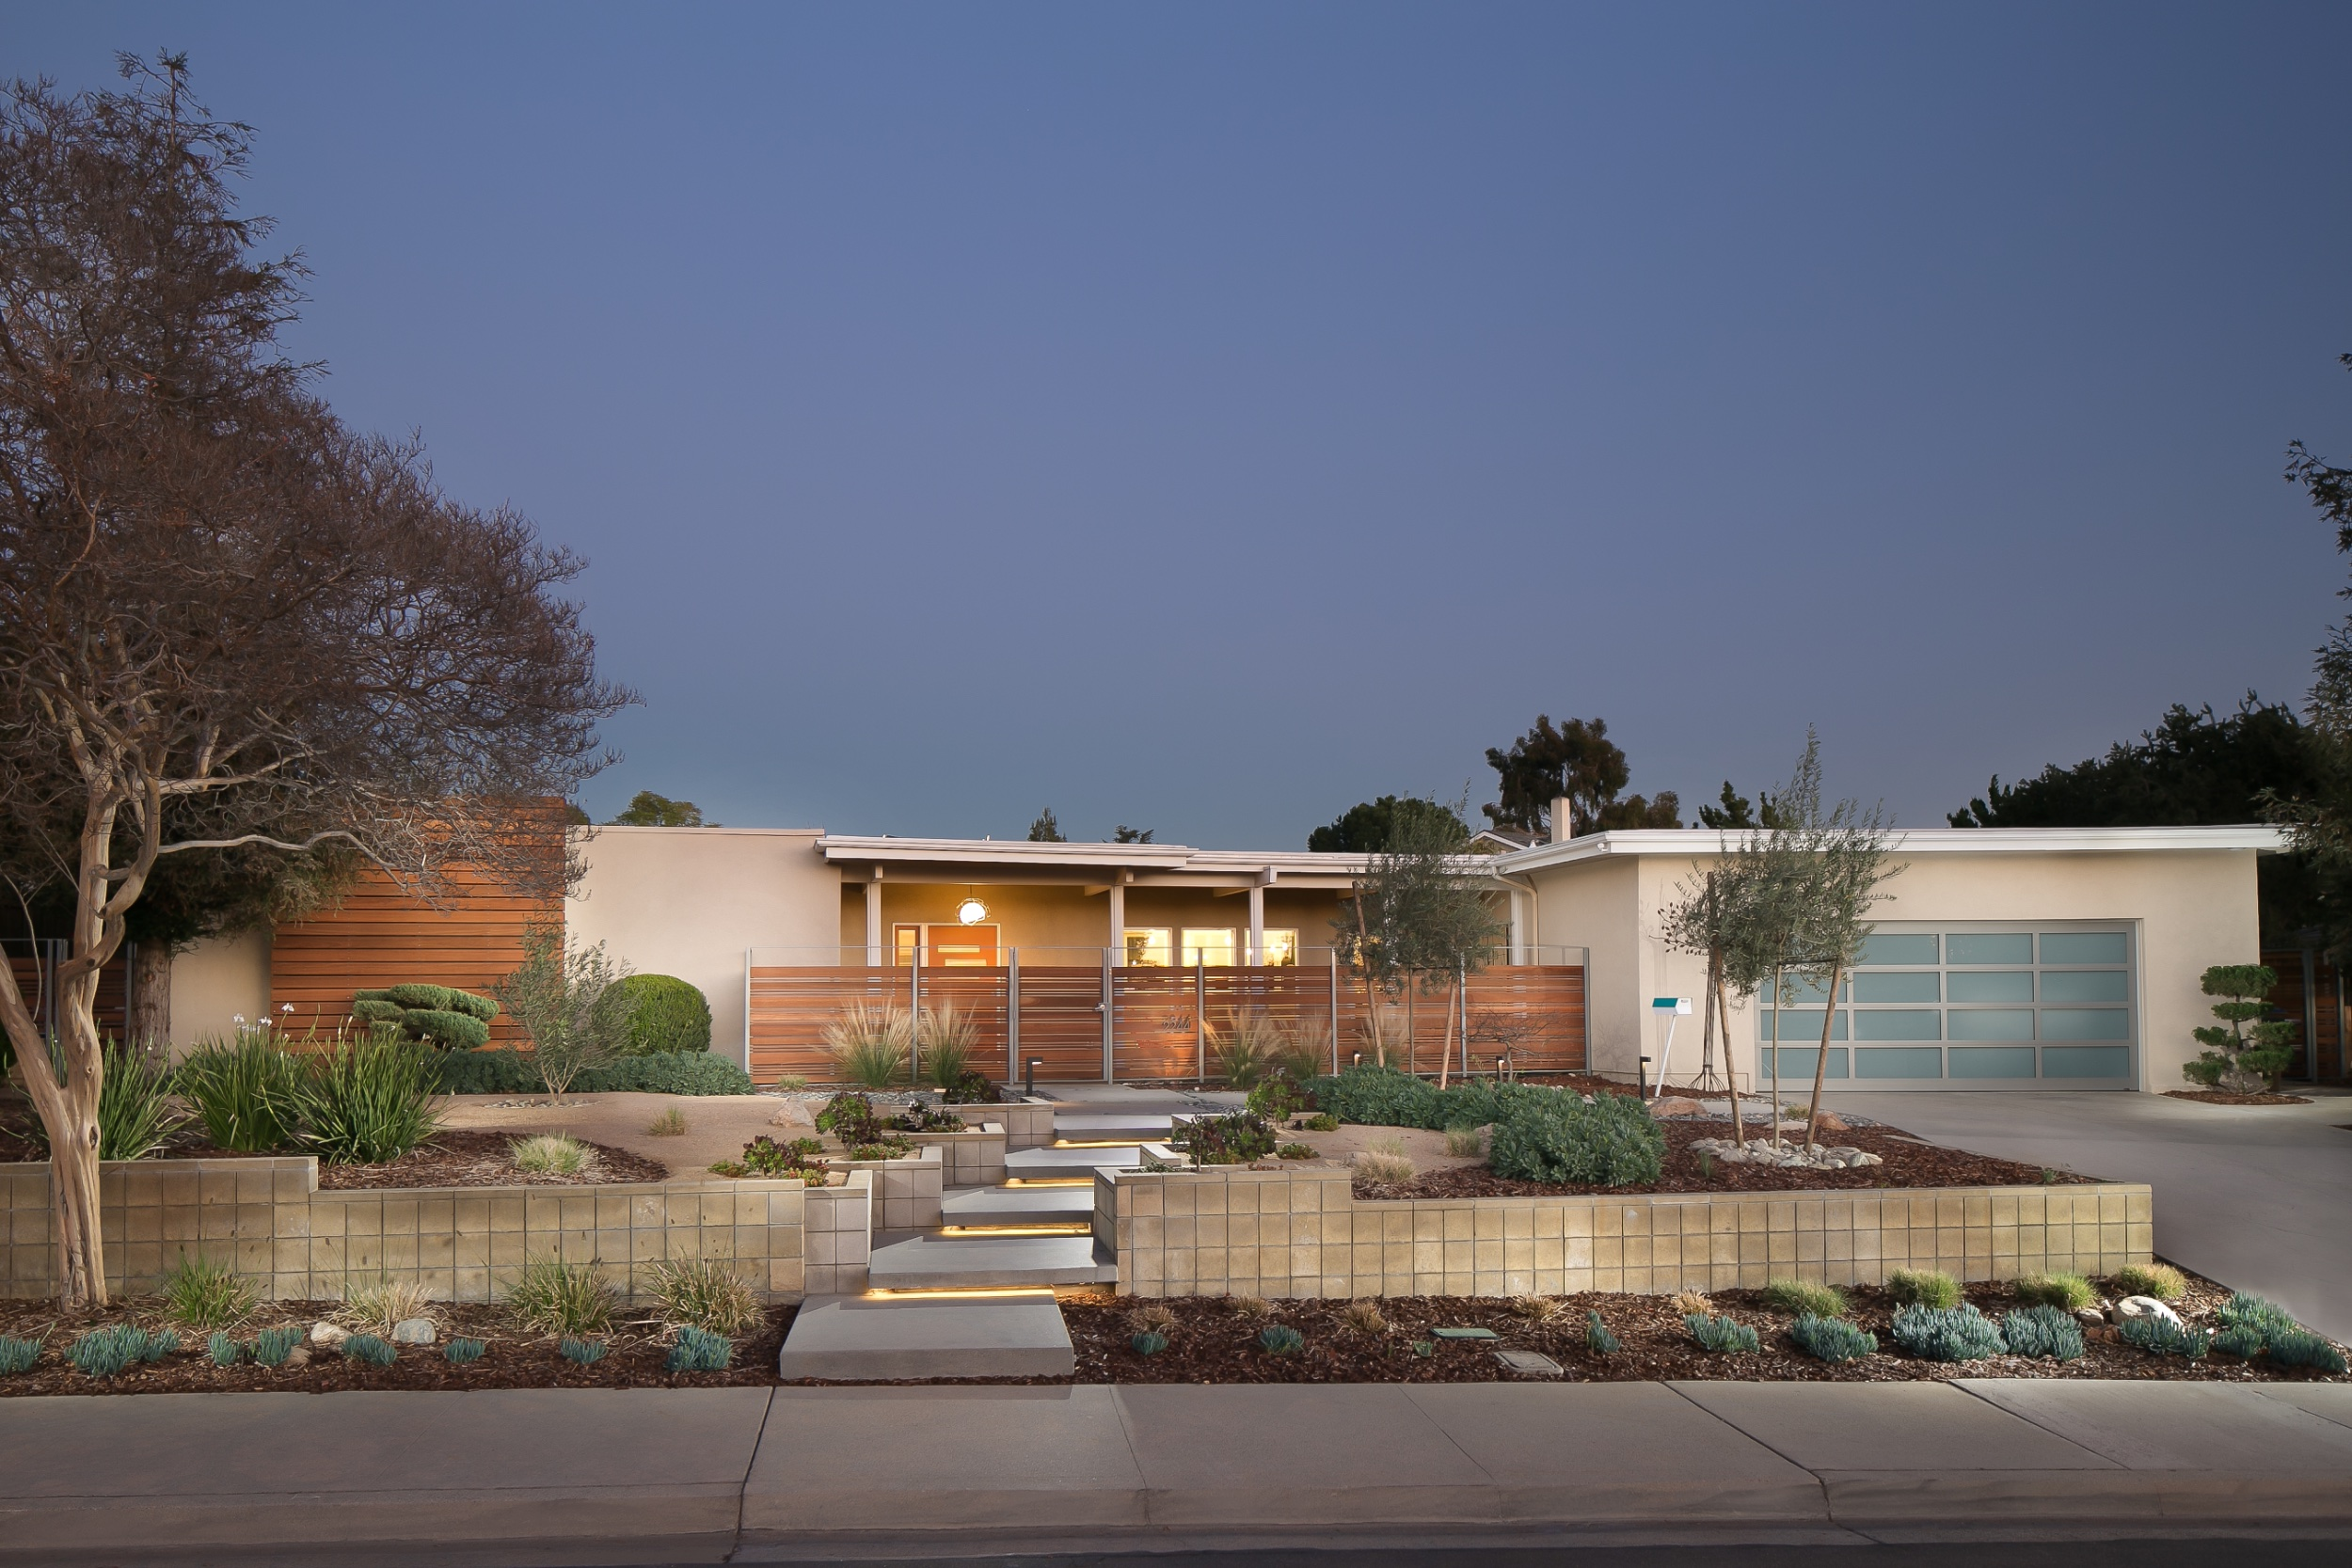 Mid-century modern home remodel with xeriscape landscaping